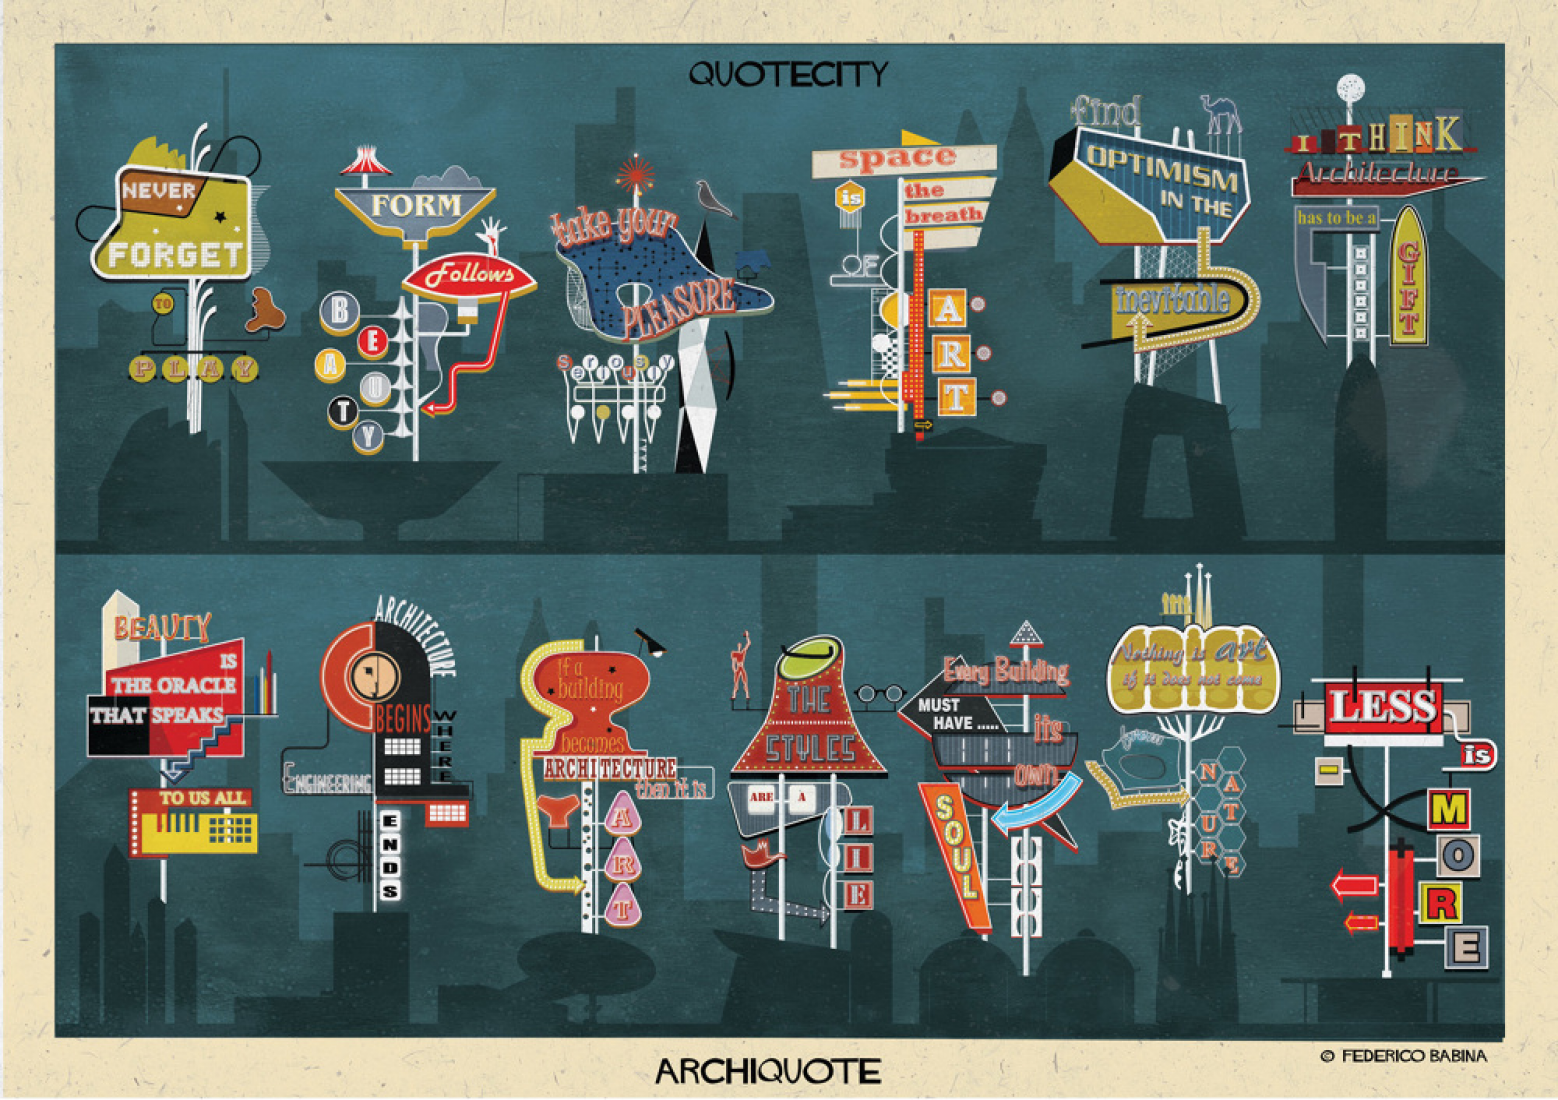 Archiquote series by © Federico Babina.